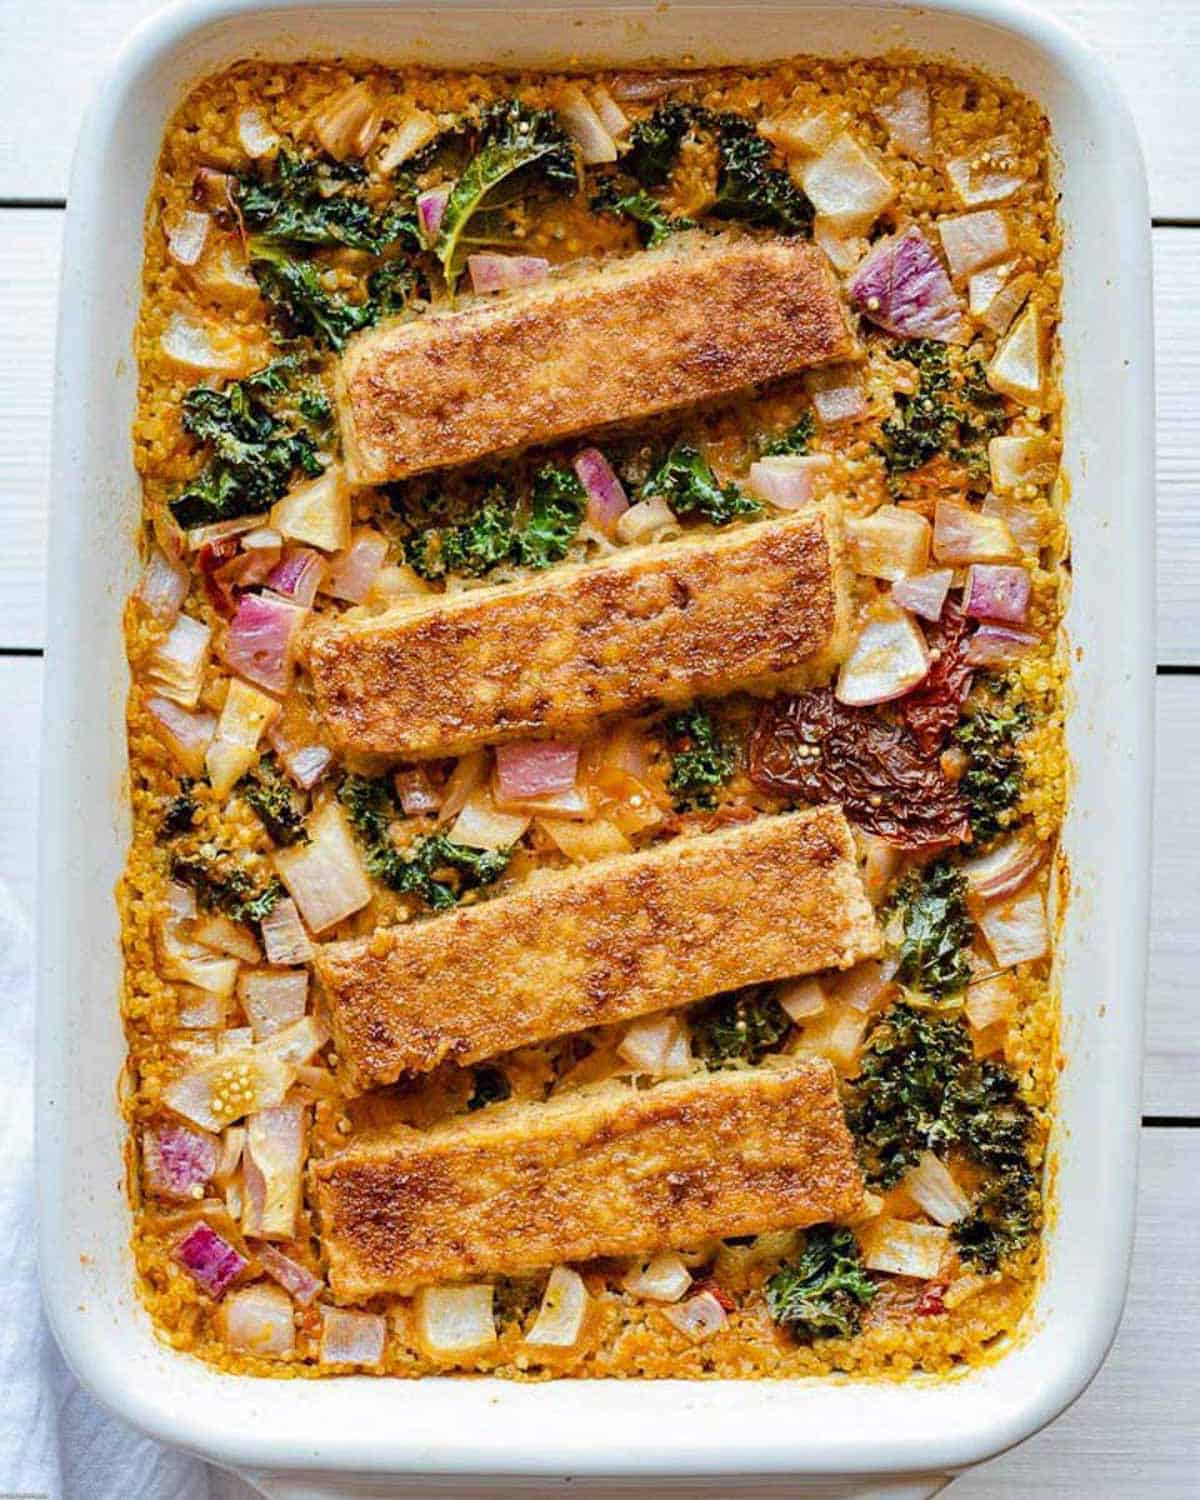 Casserole dish with quinoa, red onion, kale, and sun-dried tomatoes cooked in vegetable broth and topped with soy-glazed tofu rectangles.